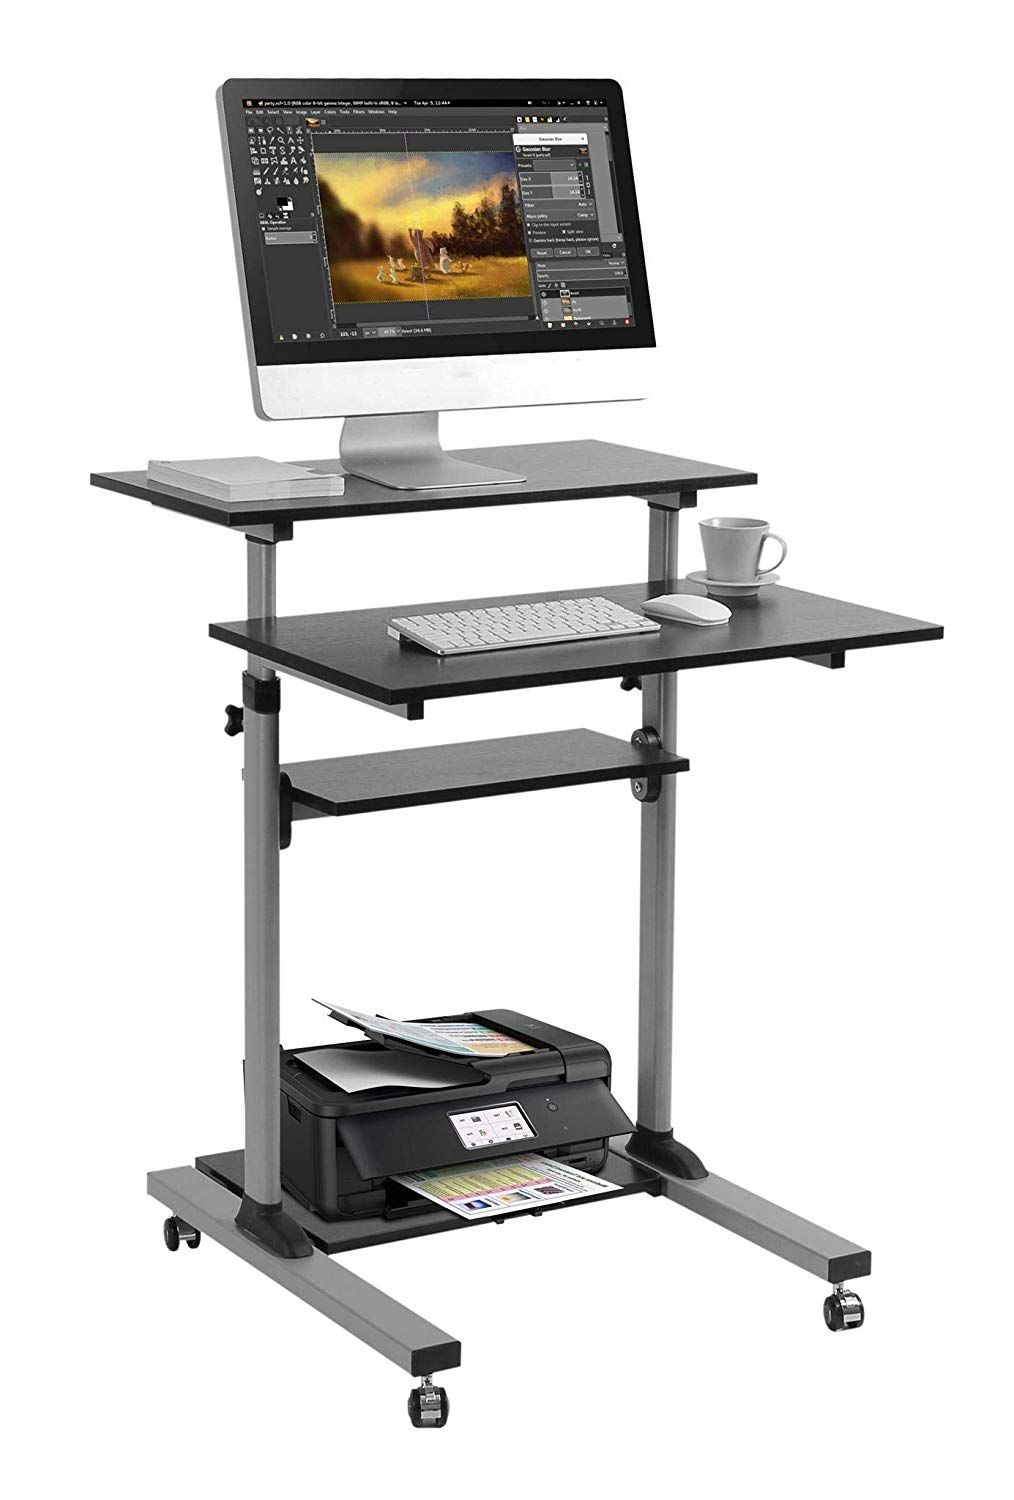 Techorbits Rolling Workstation Mobile Desk Adjustable Height Desk Mobile Standing Desk